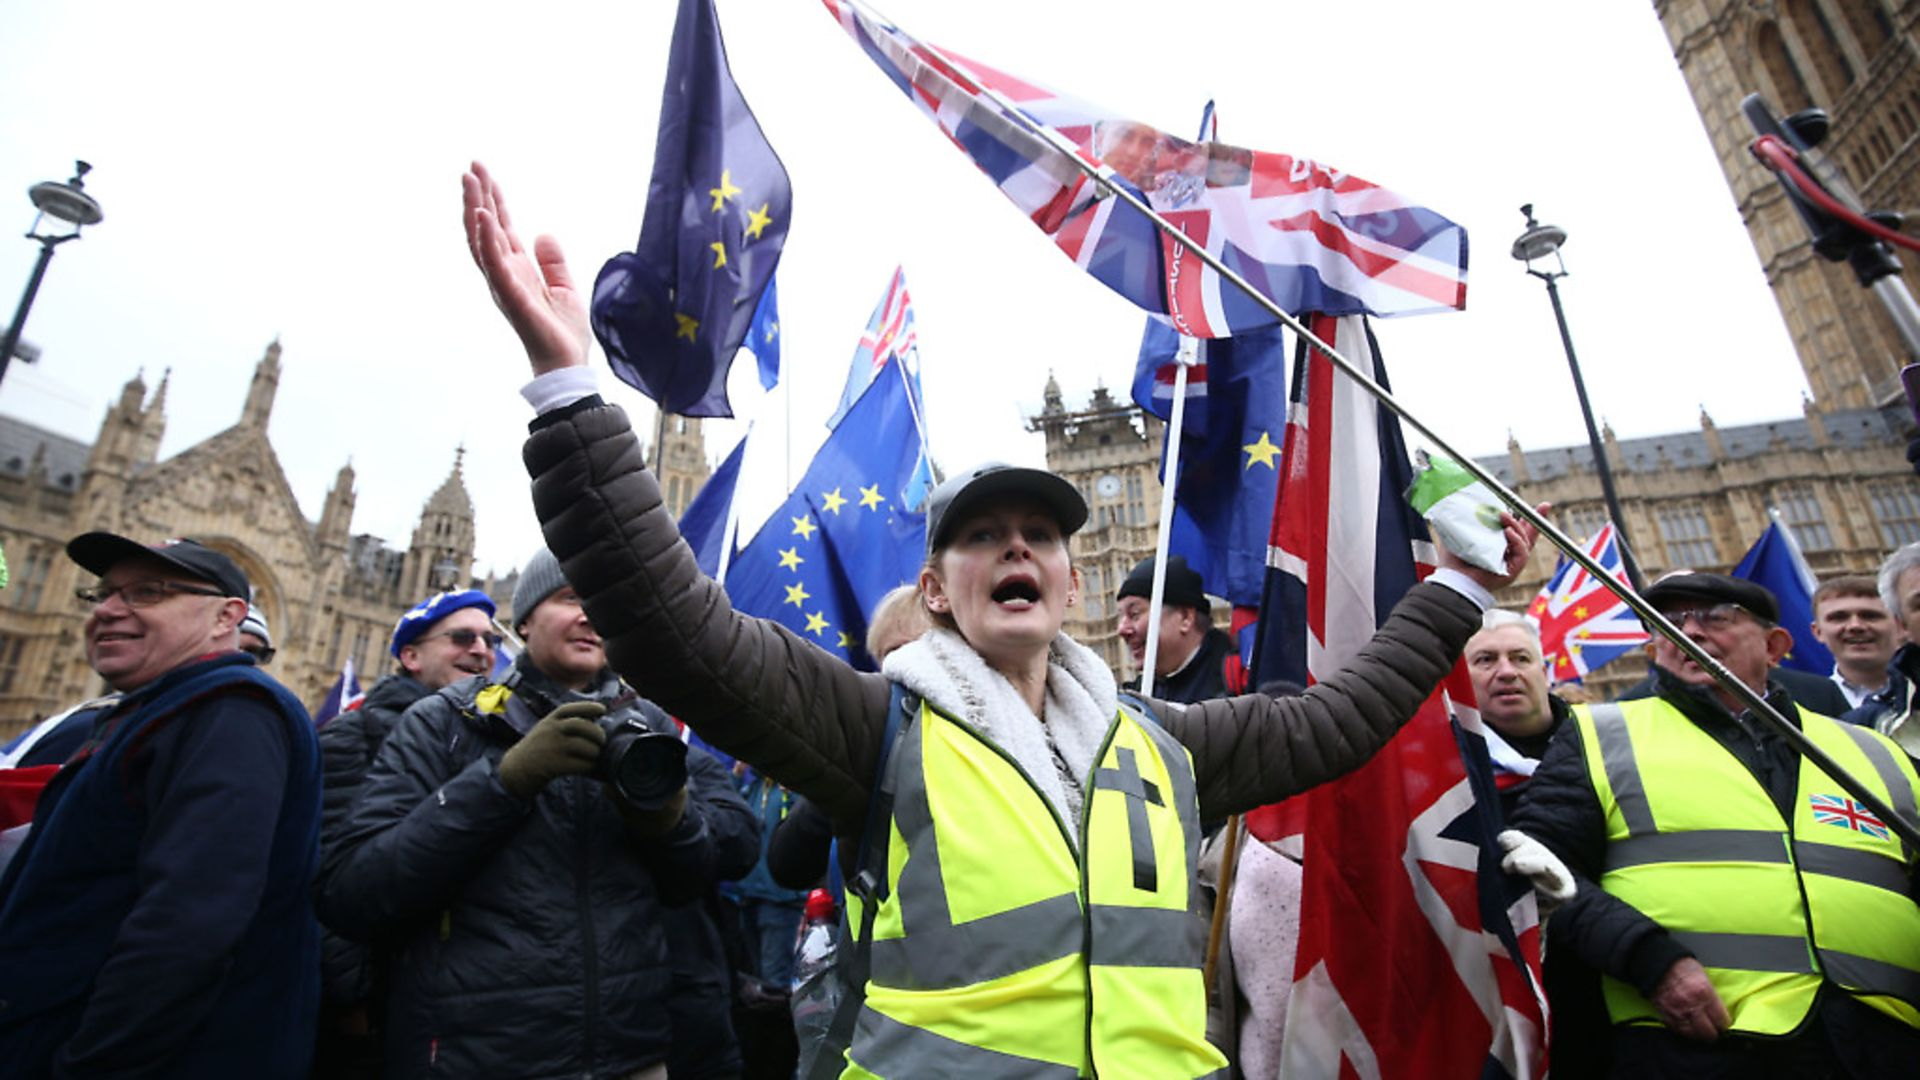 Pro Brexit supporters outside the Houses of Parliament, London, ahead of the House of Commons vote on the Prime Minister's Brexit deal. Photo credit: Yui Mok/PA Wire - Credit: PA